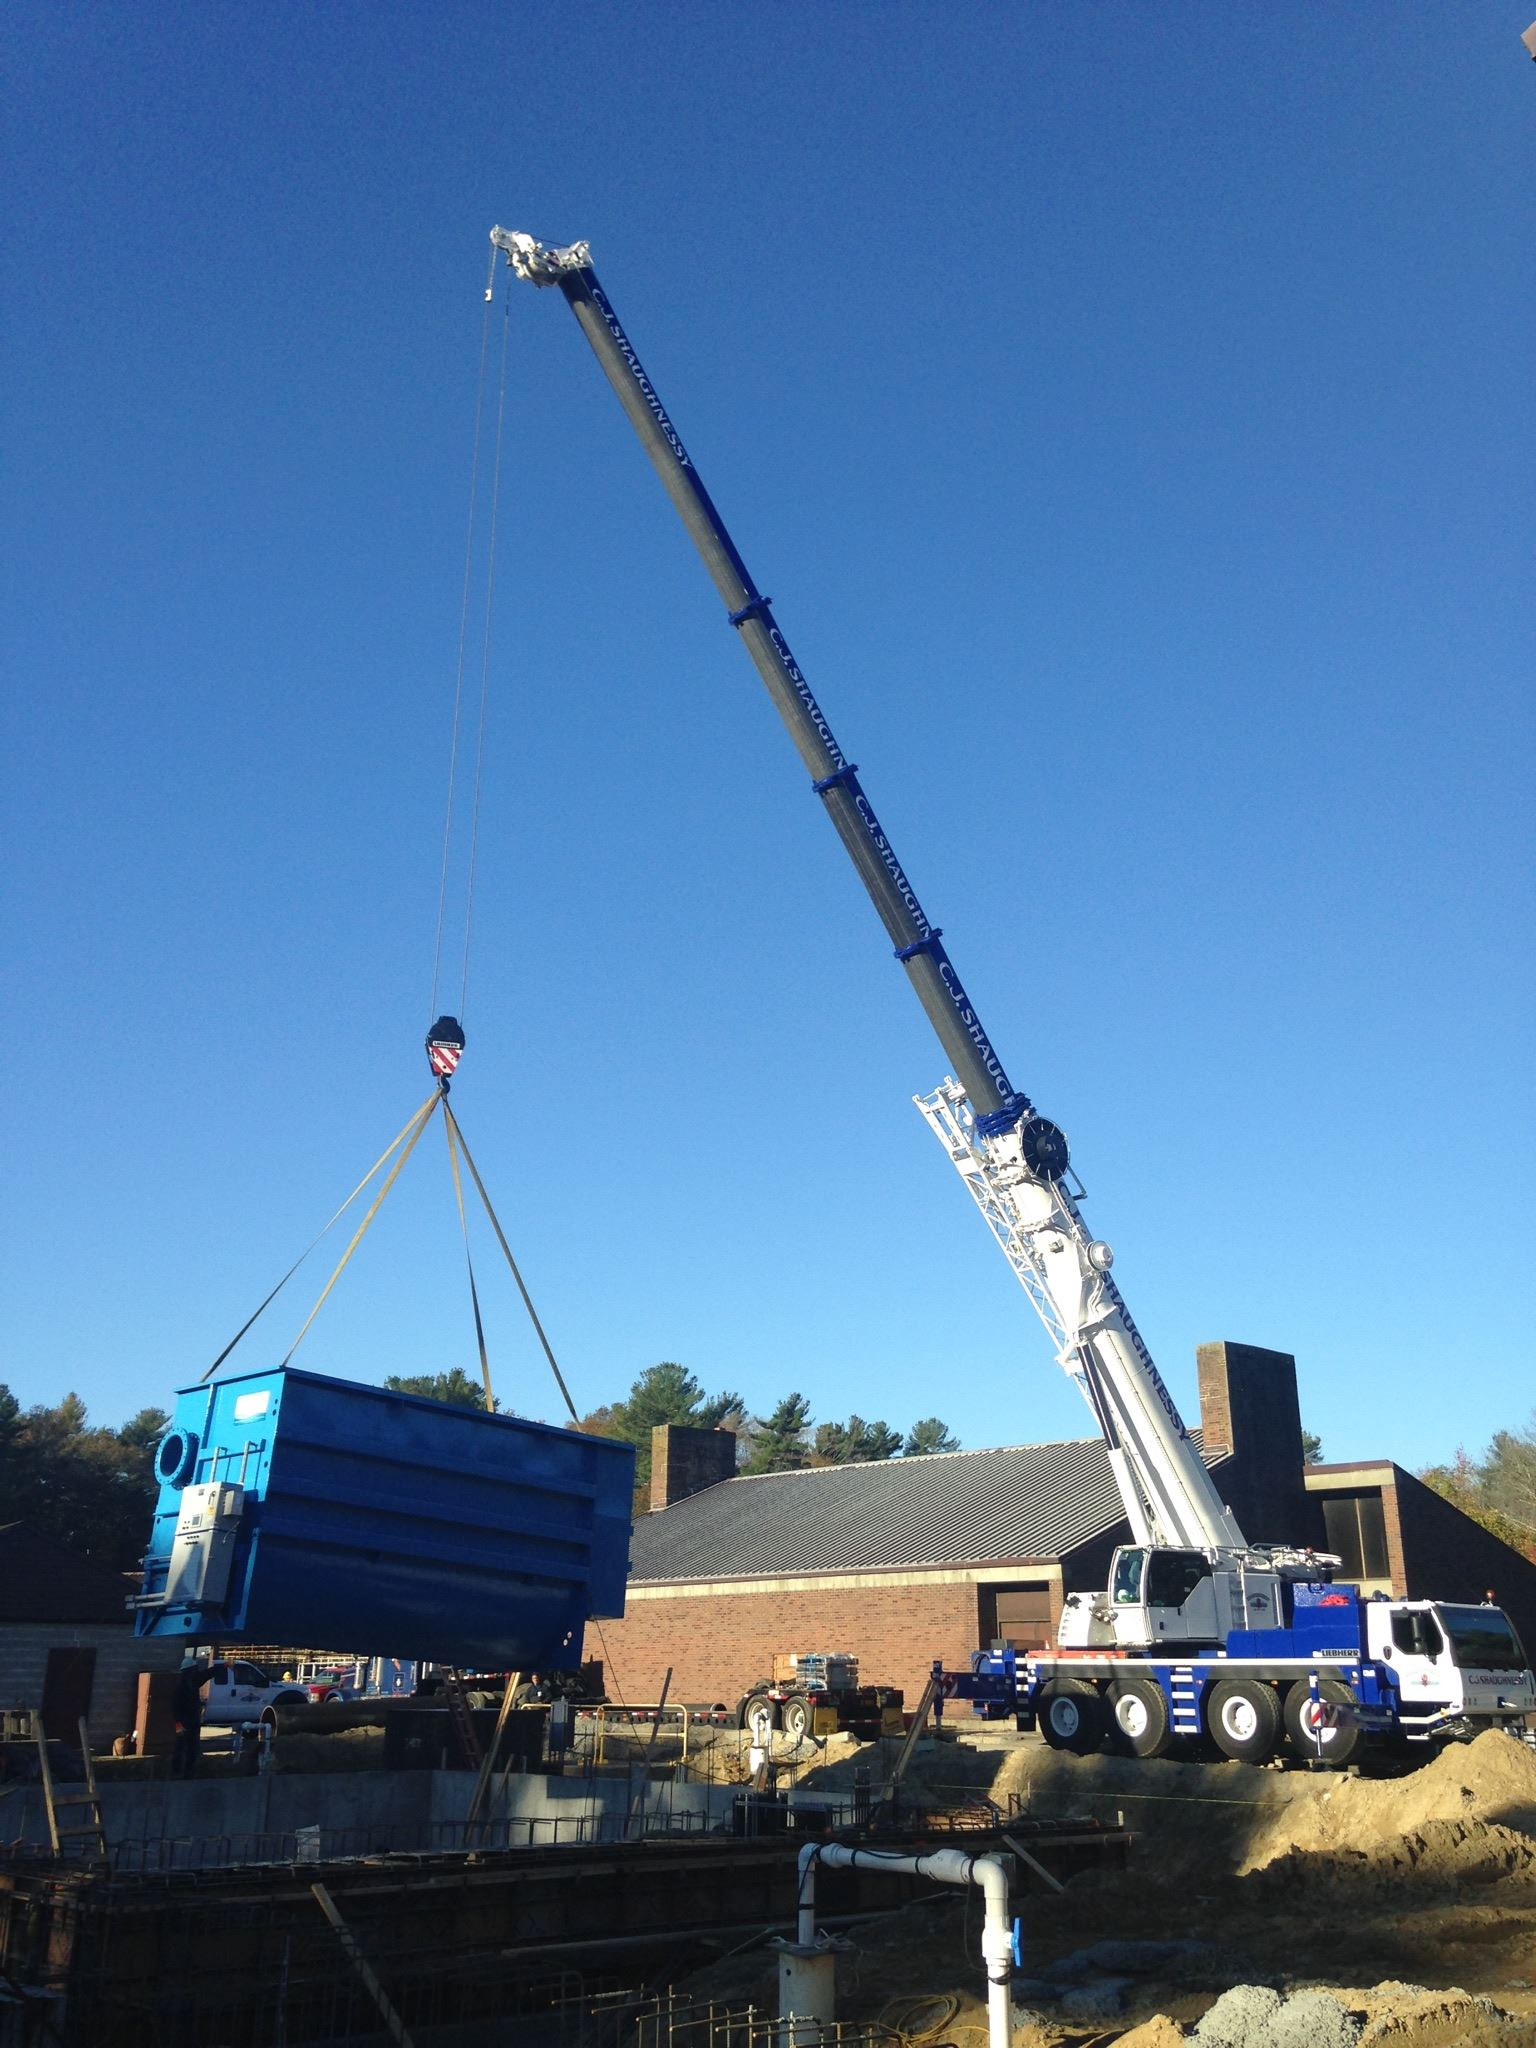 Crane Lifting a Large Crate